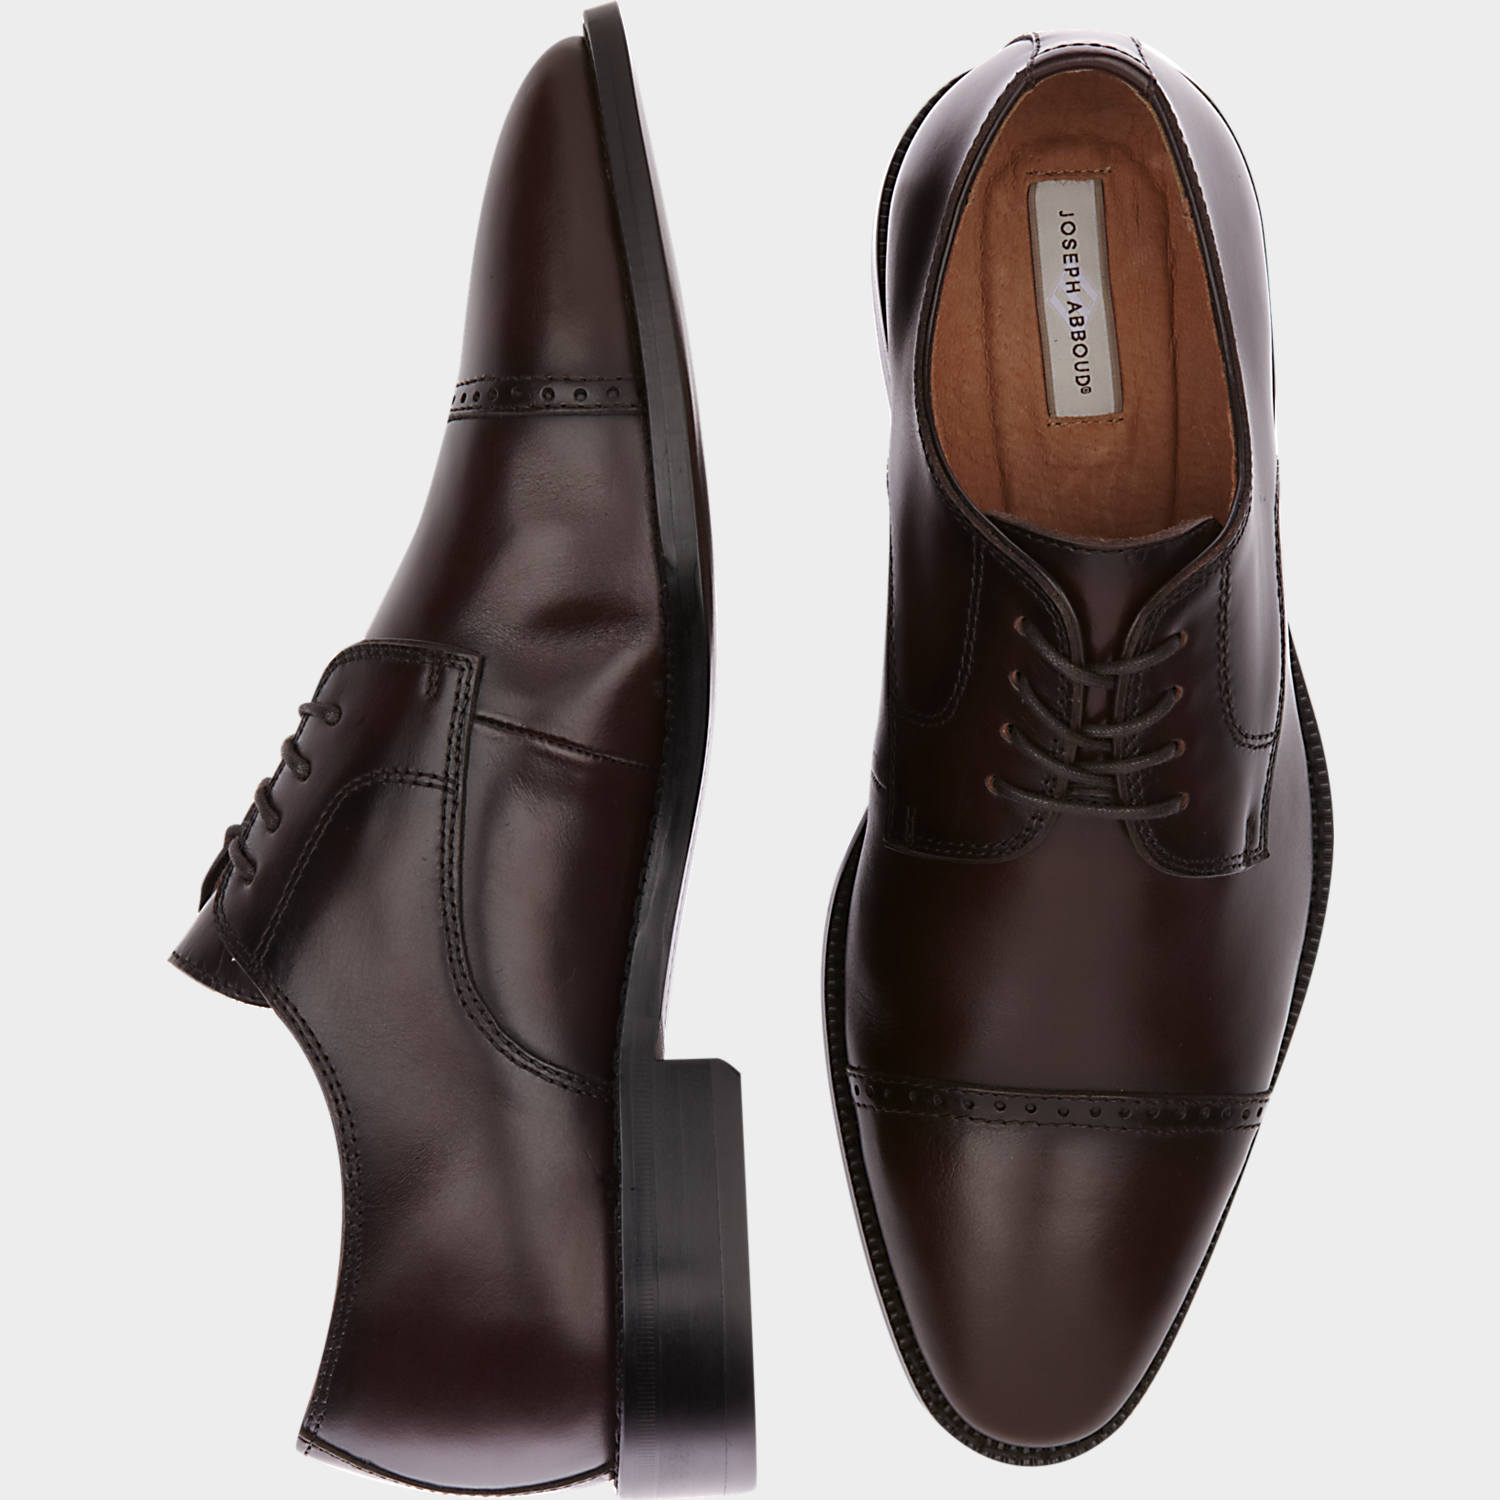 Features of good men's shoes